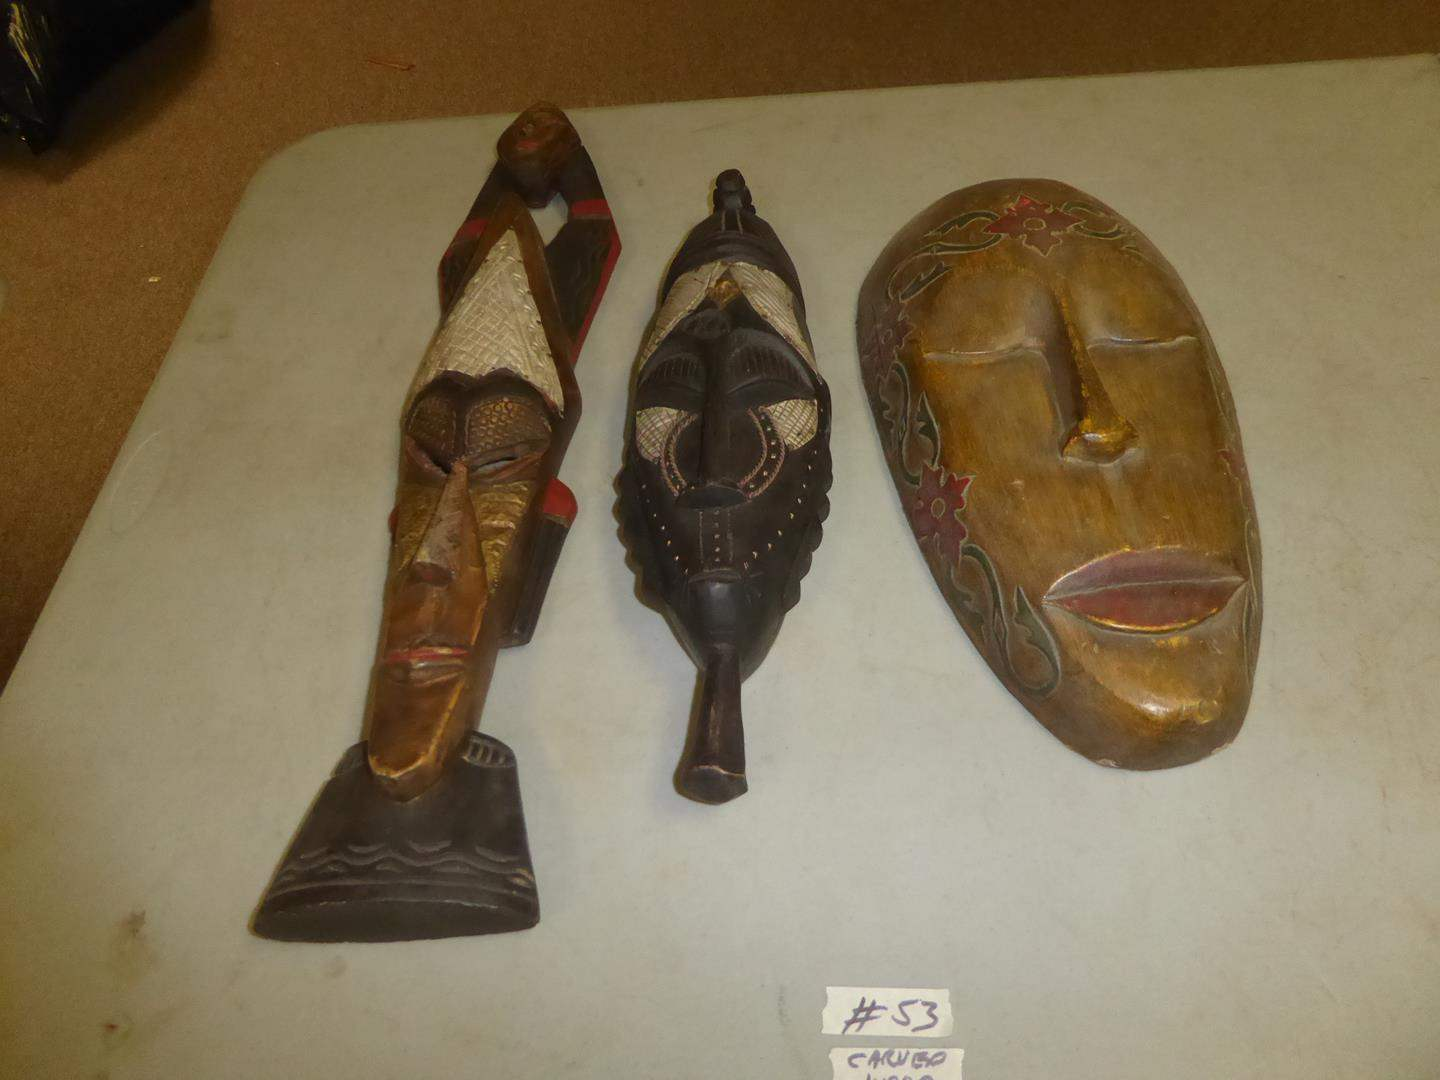 Lot # 53 - Vintage Handcrafted in Ghana Wooden Sculpture & Two Hand Painted Exotic Wall Art Wooden Faces  (main image)